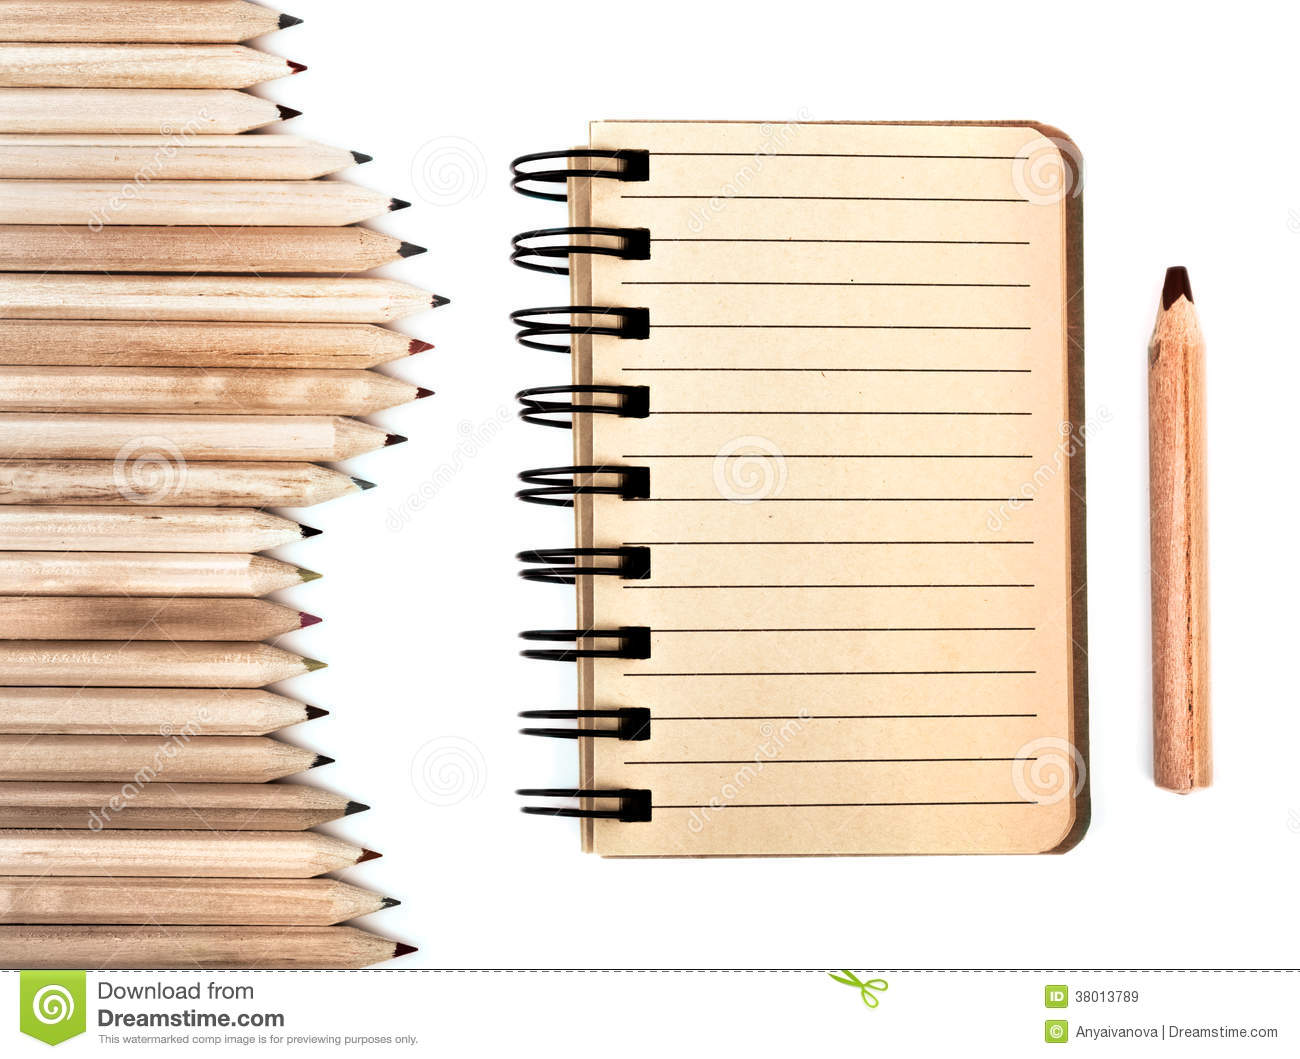 Stationary made from sustainable wood royalty free stock for Why is wood sustainable